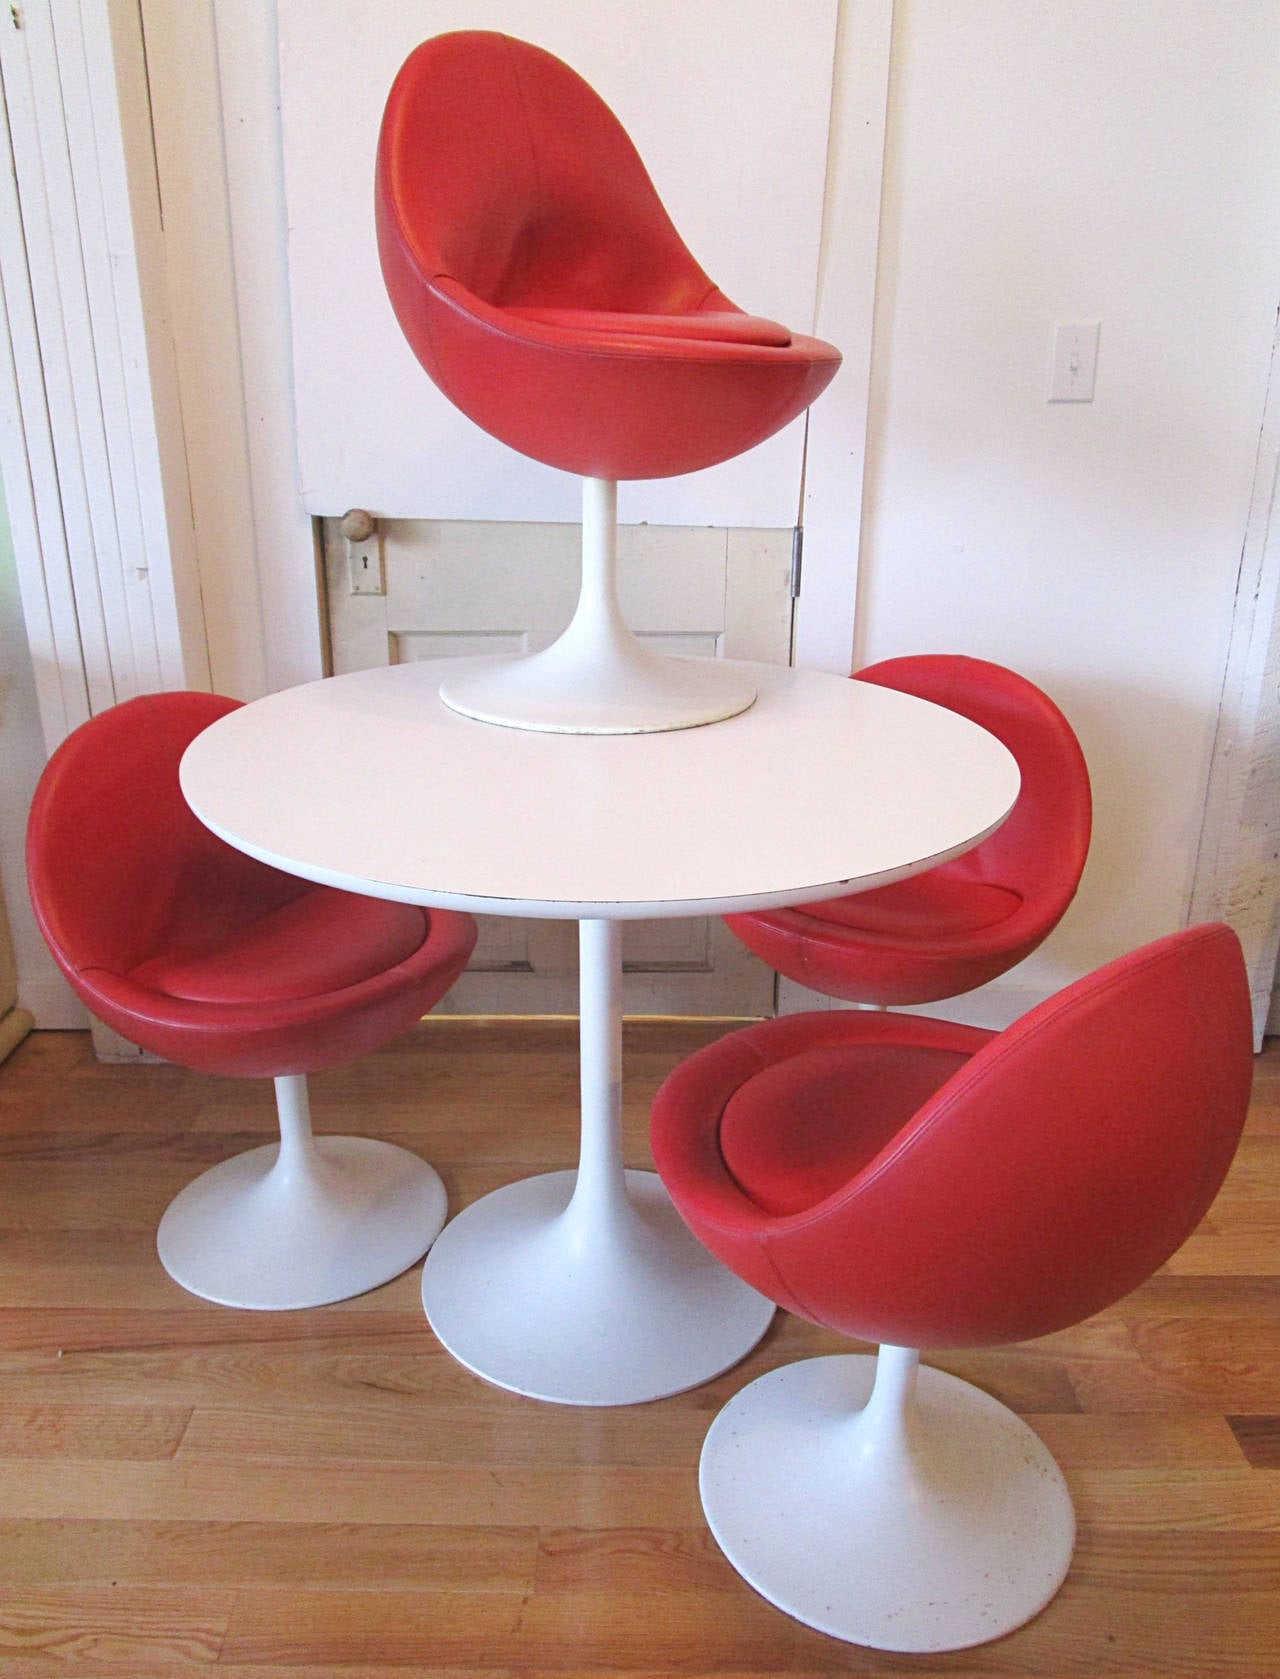 """Reminiscent of the Saarinen tulip set, this Borge Johanson set came out in 1968. Set includes four red egg pod swivel chairs and a 35.75"""" round by 29""""h white laminate top all on white enameled tulip bases. Chairs 21"""" D x 30"""" H, 17"""" Sh."""